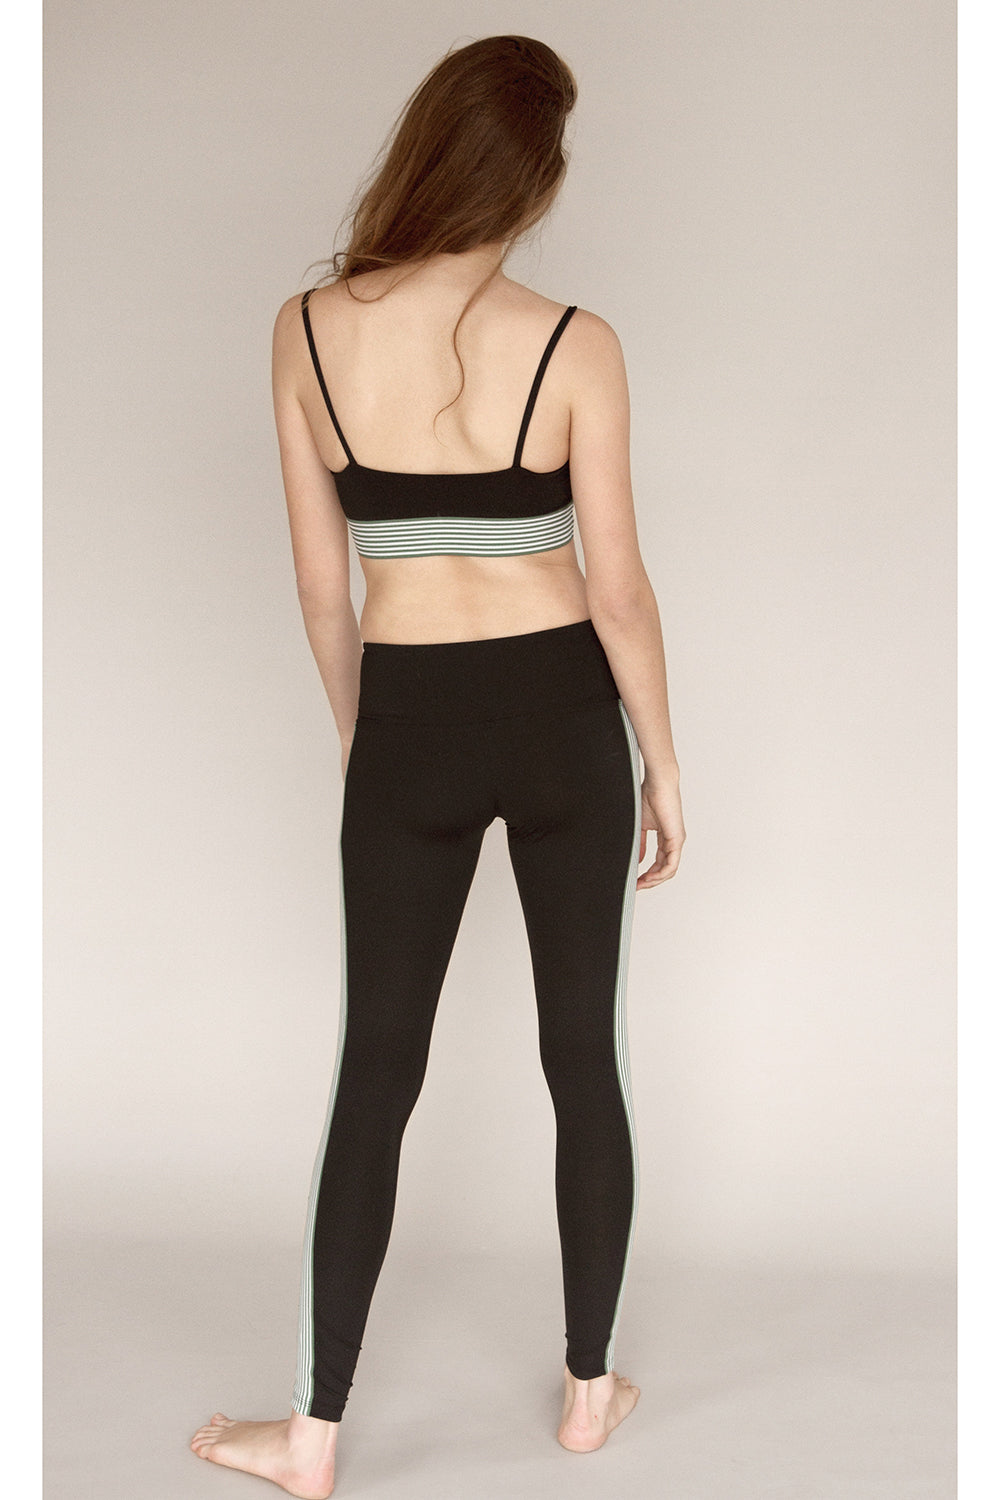 Olympia Activewear Titus Ankle Legging in Jet- Final Sale